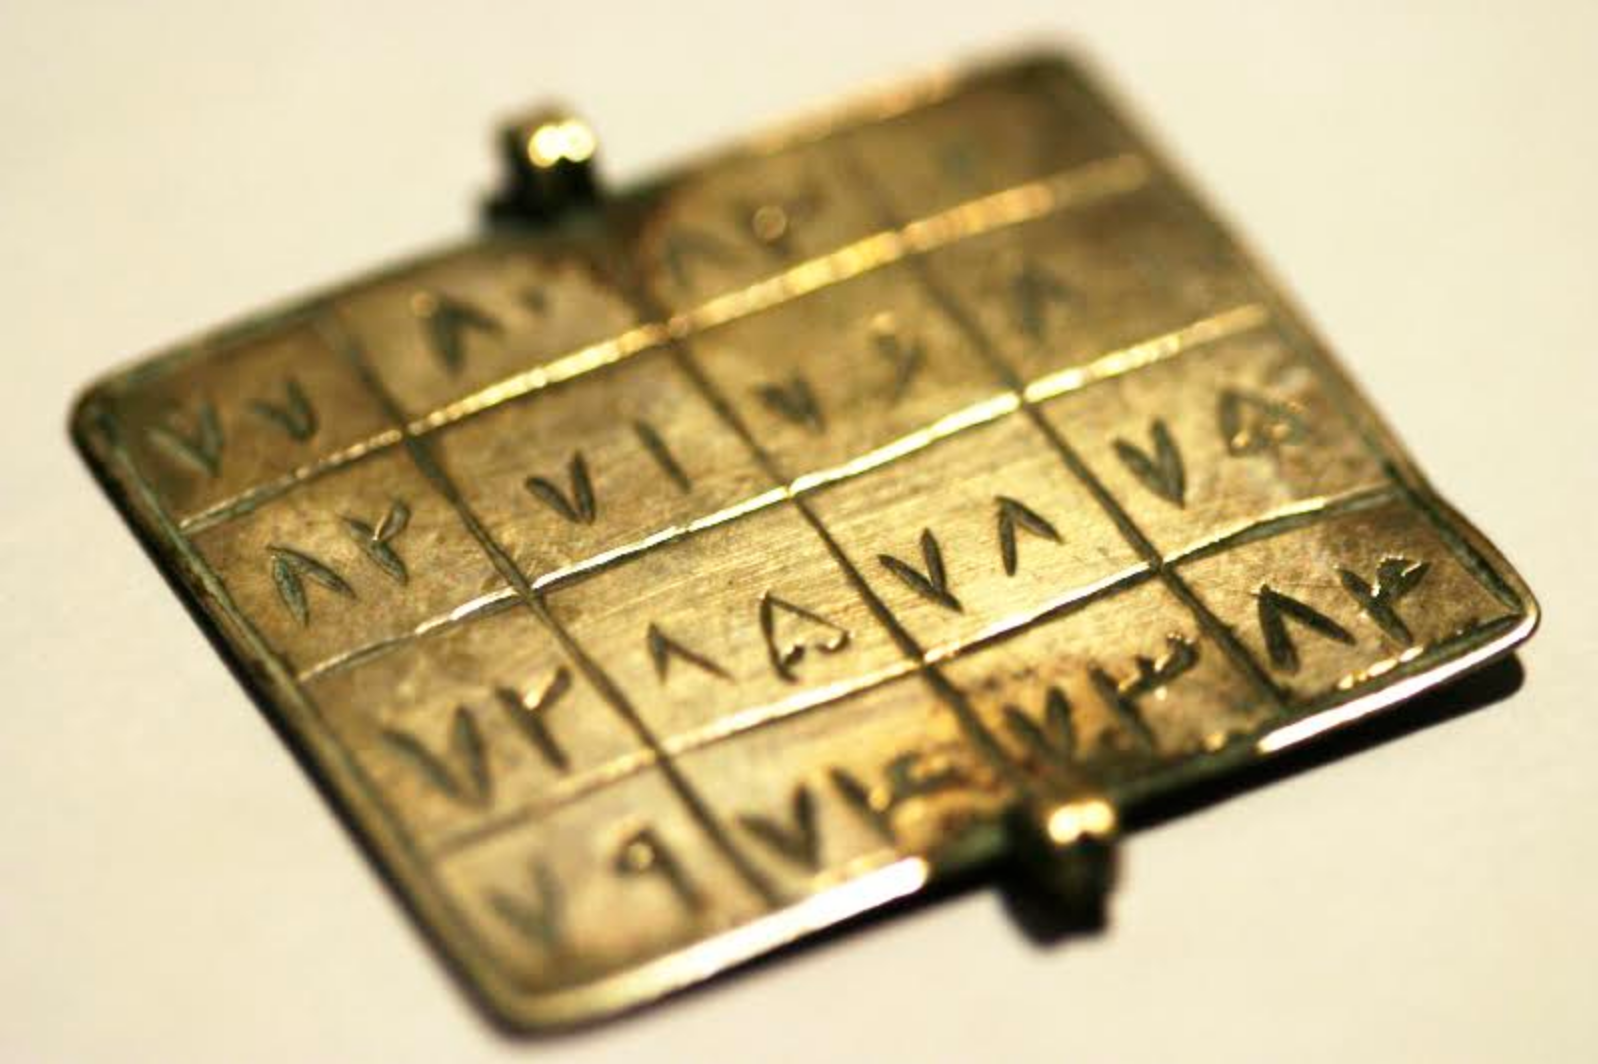 A Palindromic Amulet - A palindromic amulet, silver, India. A palindrome is a word, phrase, number, or other sequence of characters that reads the same backward as forward, and is often considered to have magical properties. Photo credit: Kashgar